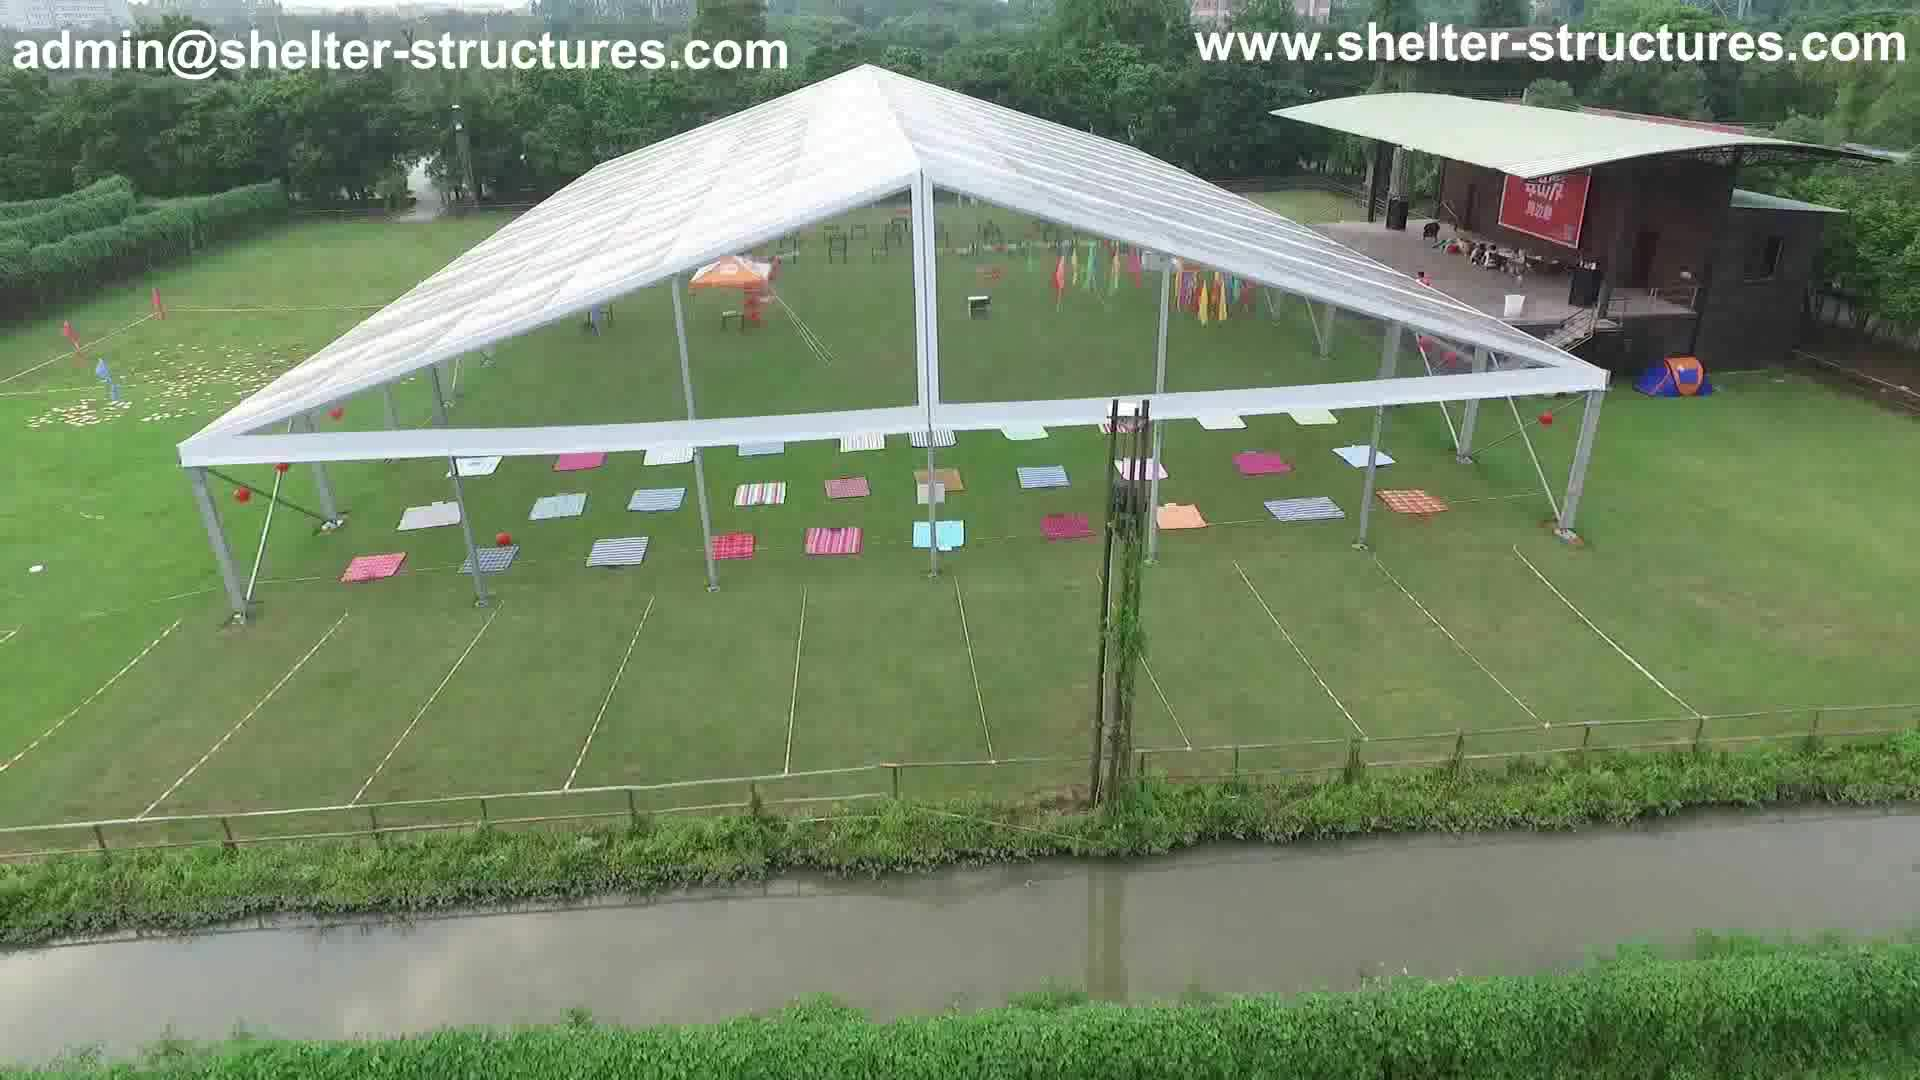 500 people cheap clear roof wedding tents for sale buy for Cheap wall tents for sale